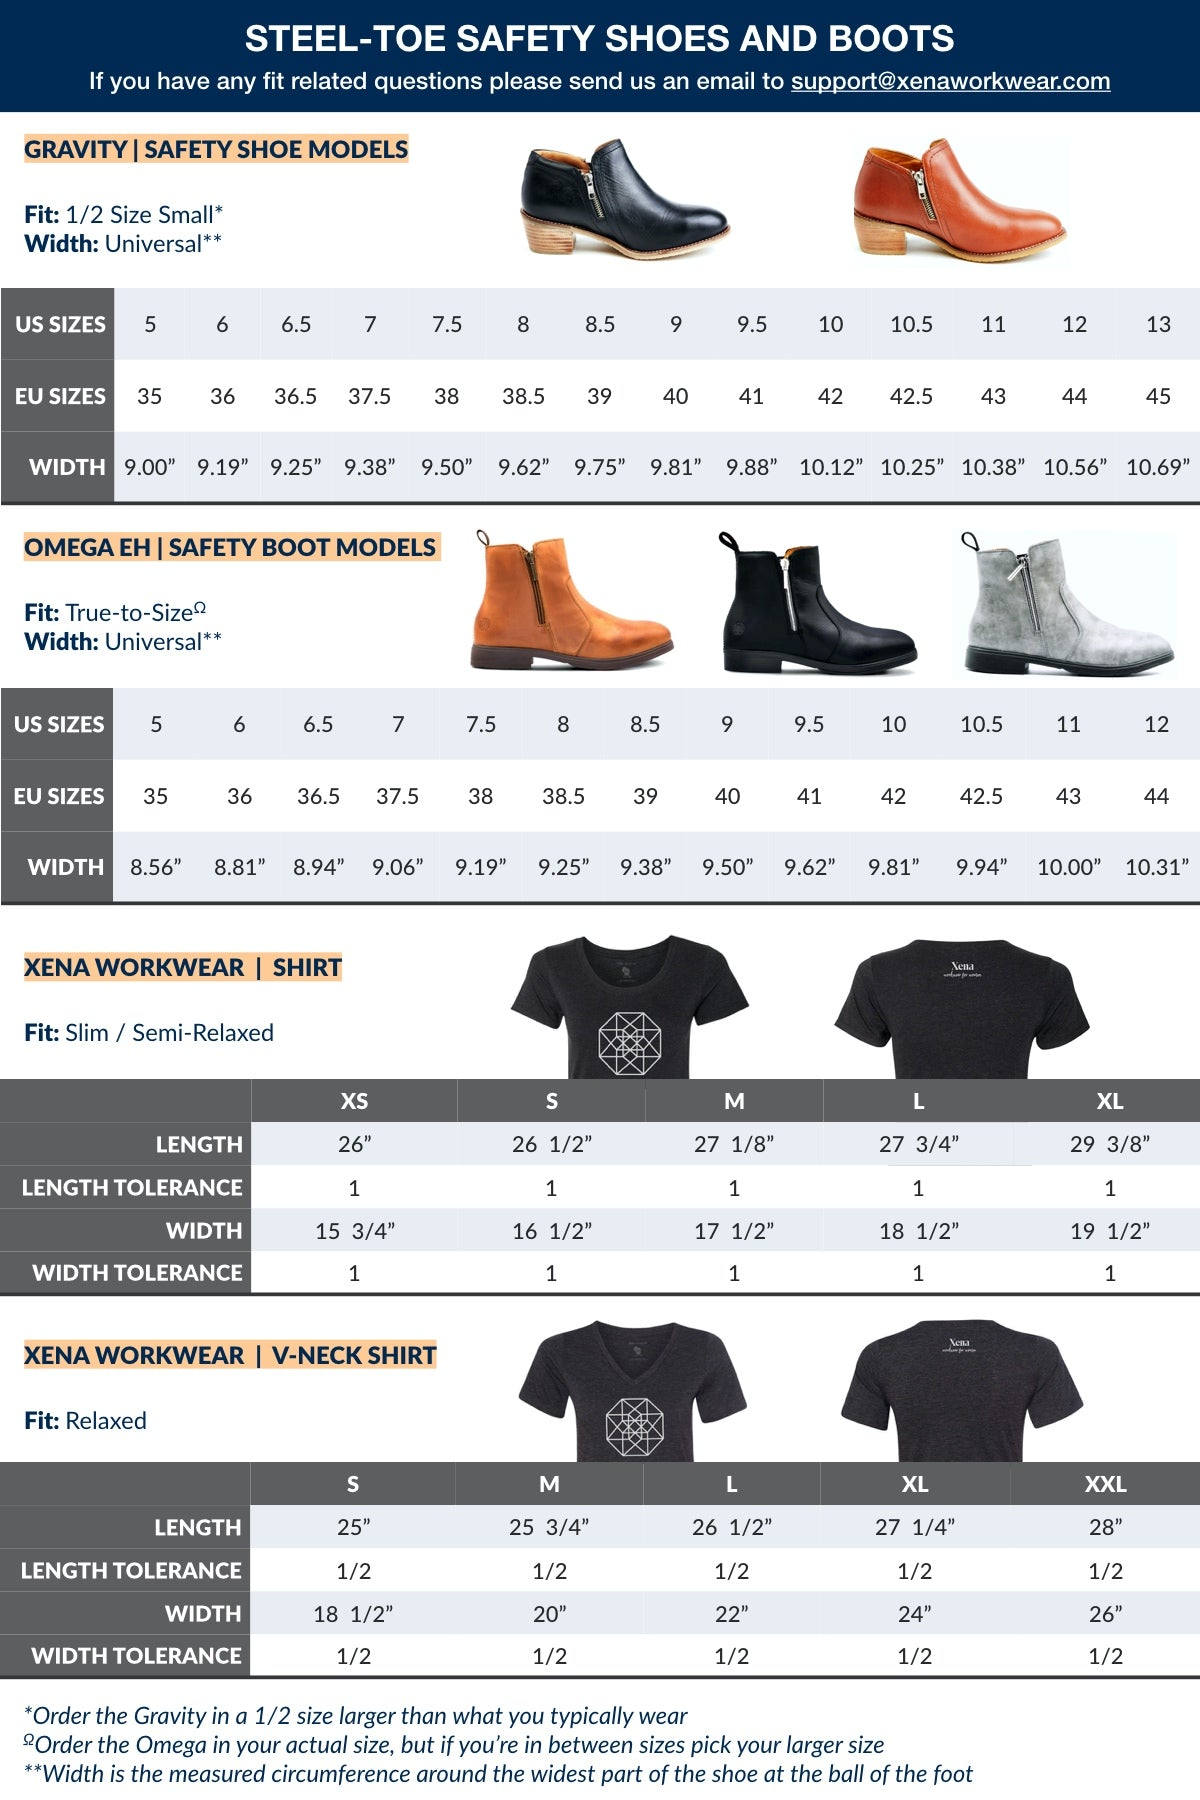 Xena Workwear Size Guide for Steel-Toe Safety Shoes, Booties, Boots, and Shirts Women's Size Guide